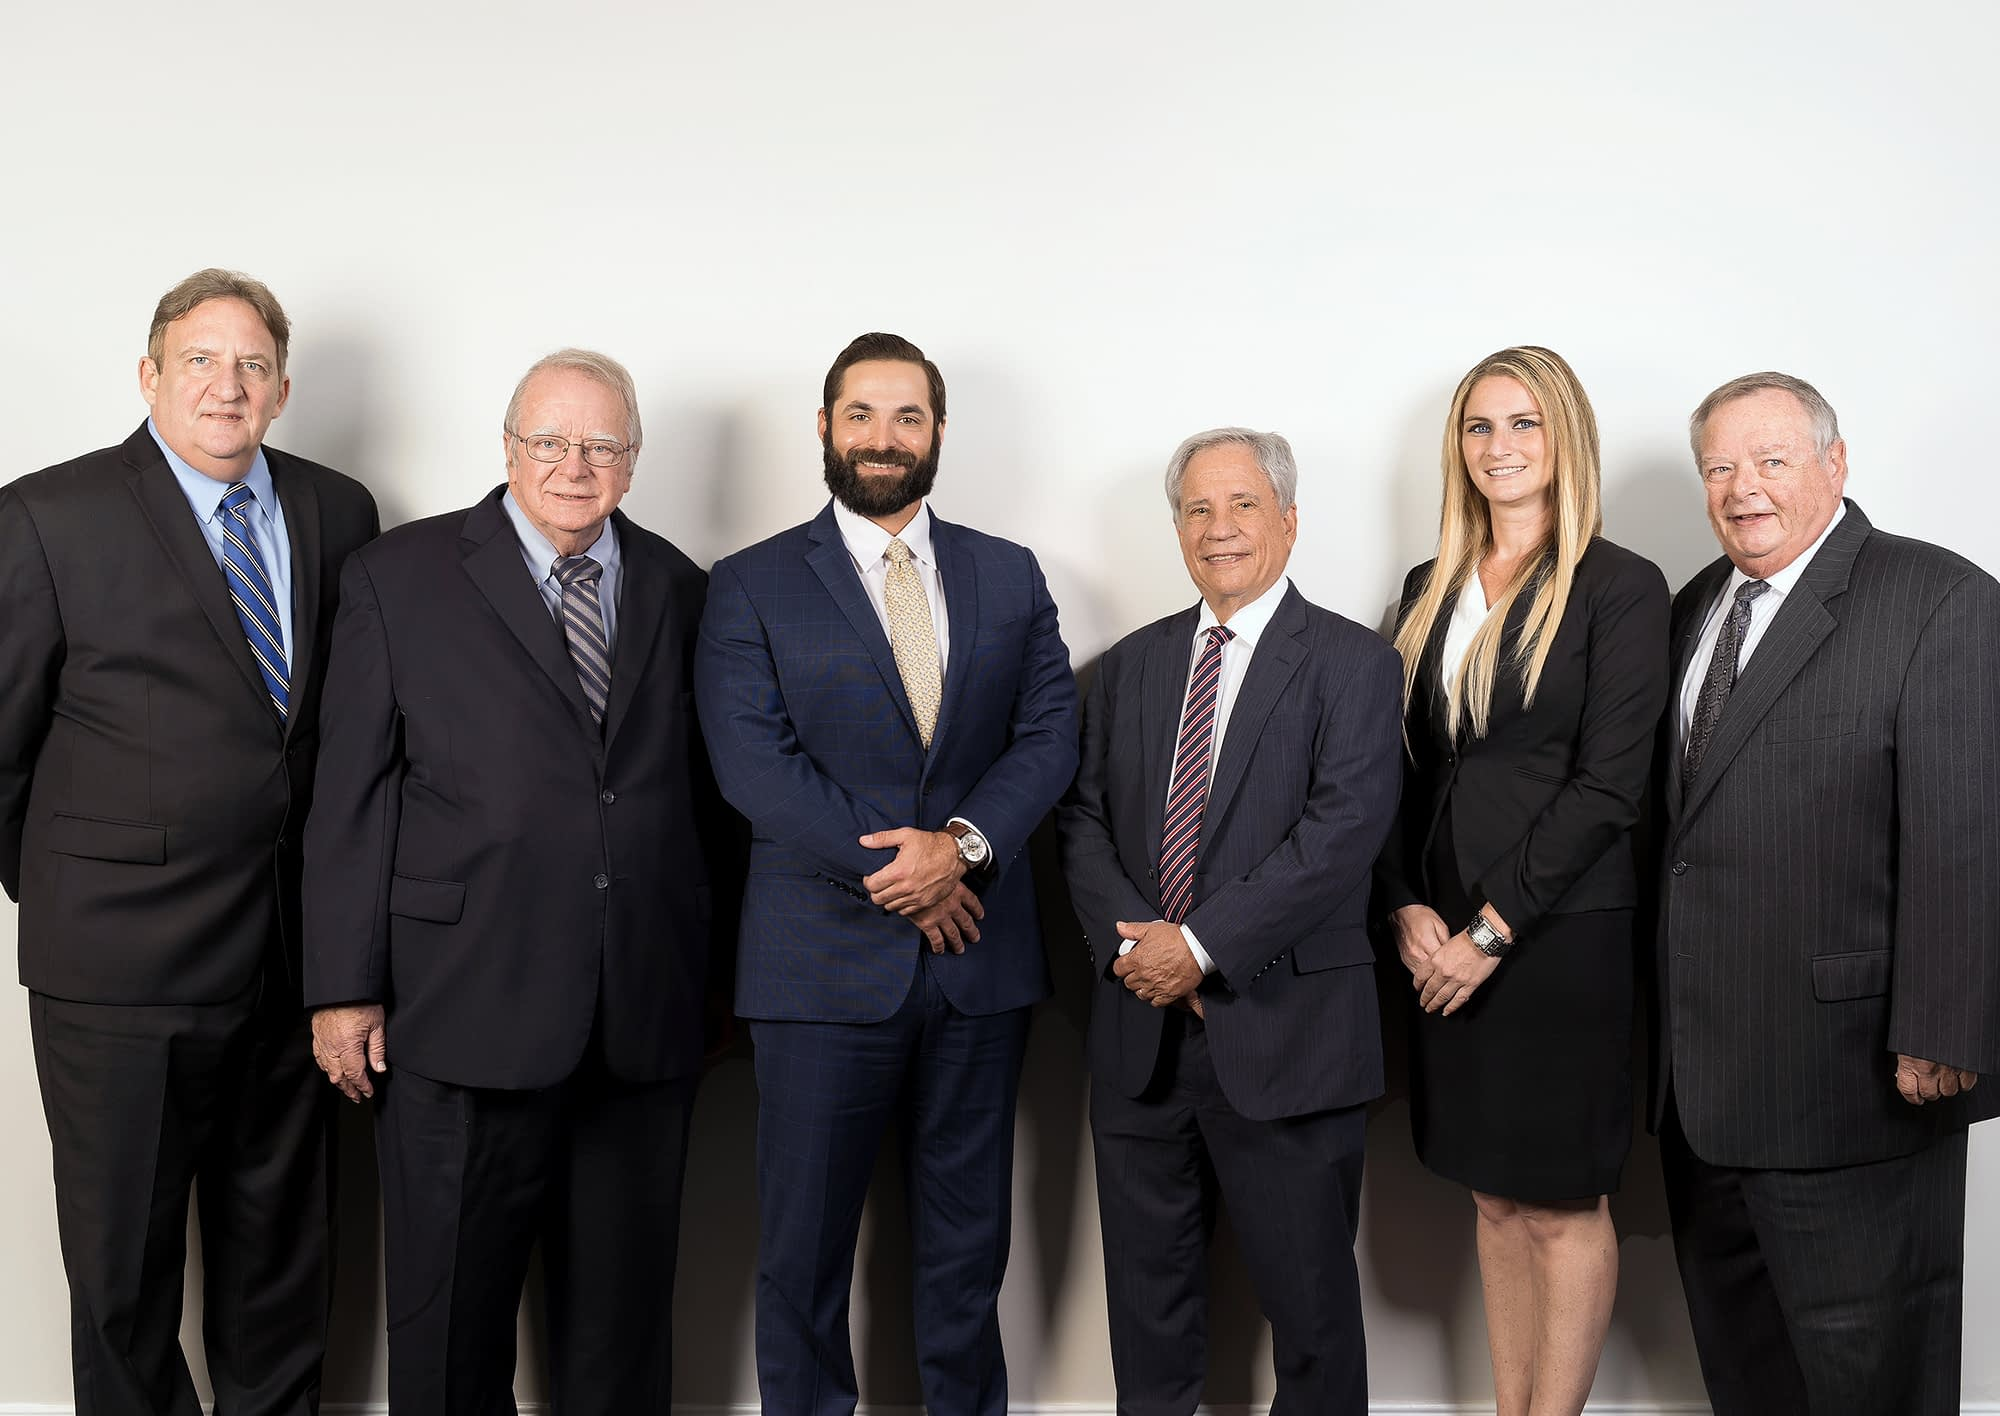 Personals Injury Attorneys in Hollywood, FL